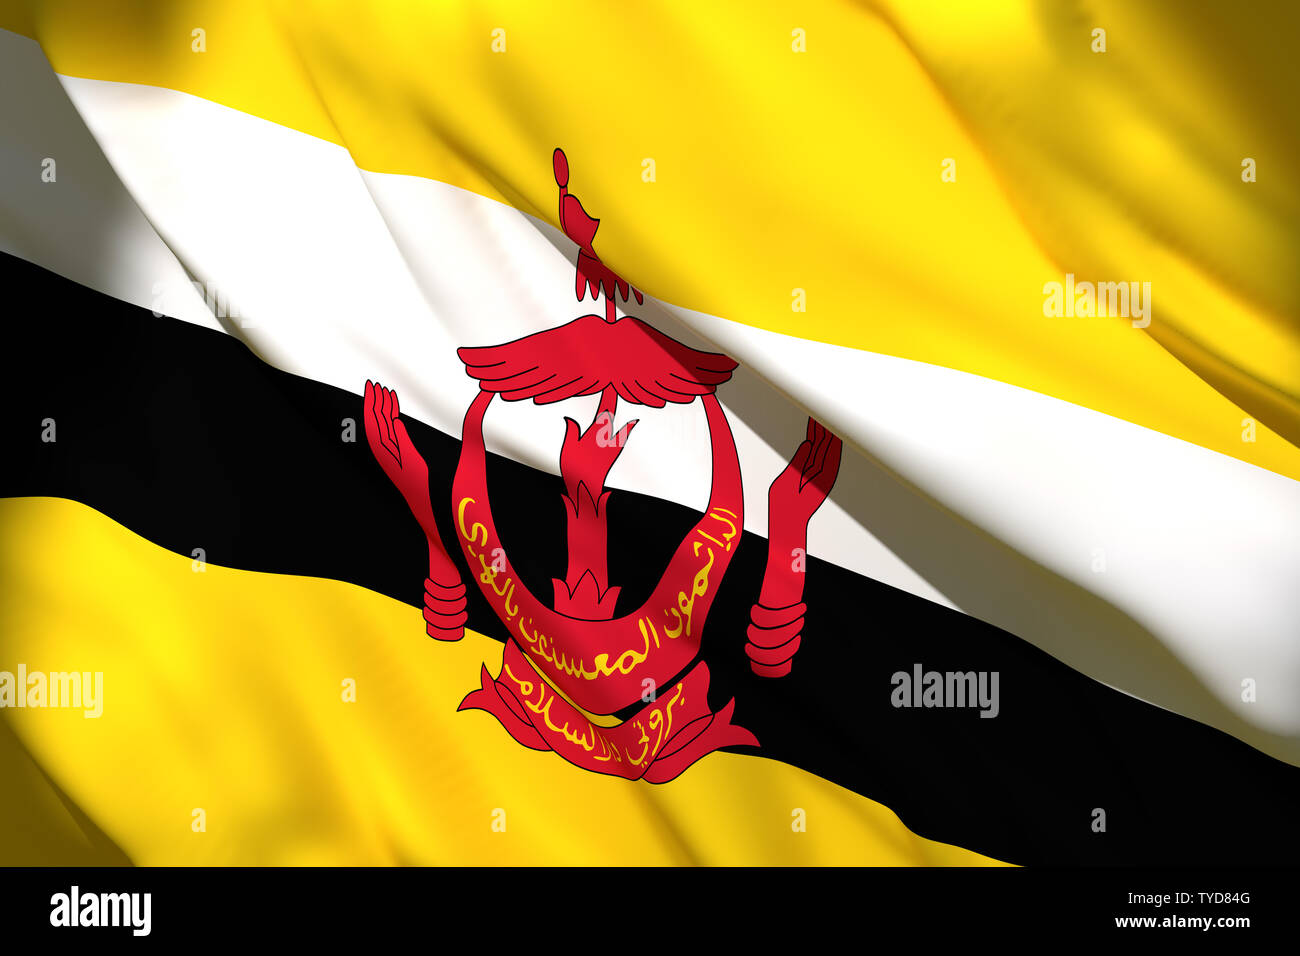 3d rendering of a Brunei national flag waving - Stock Image